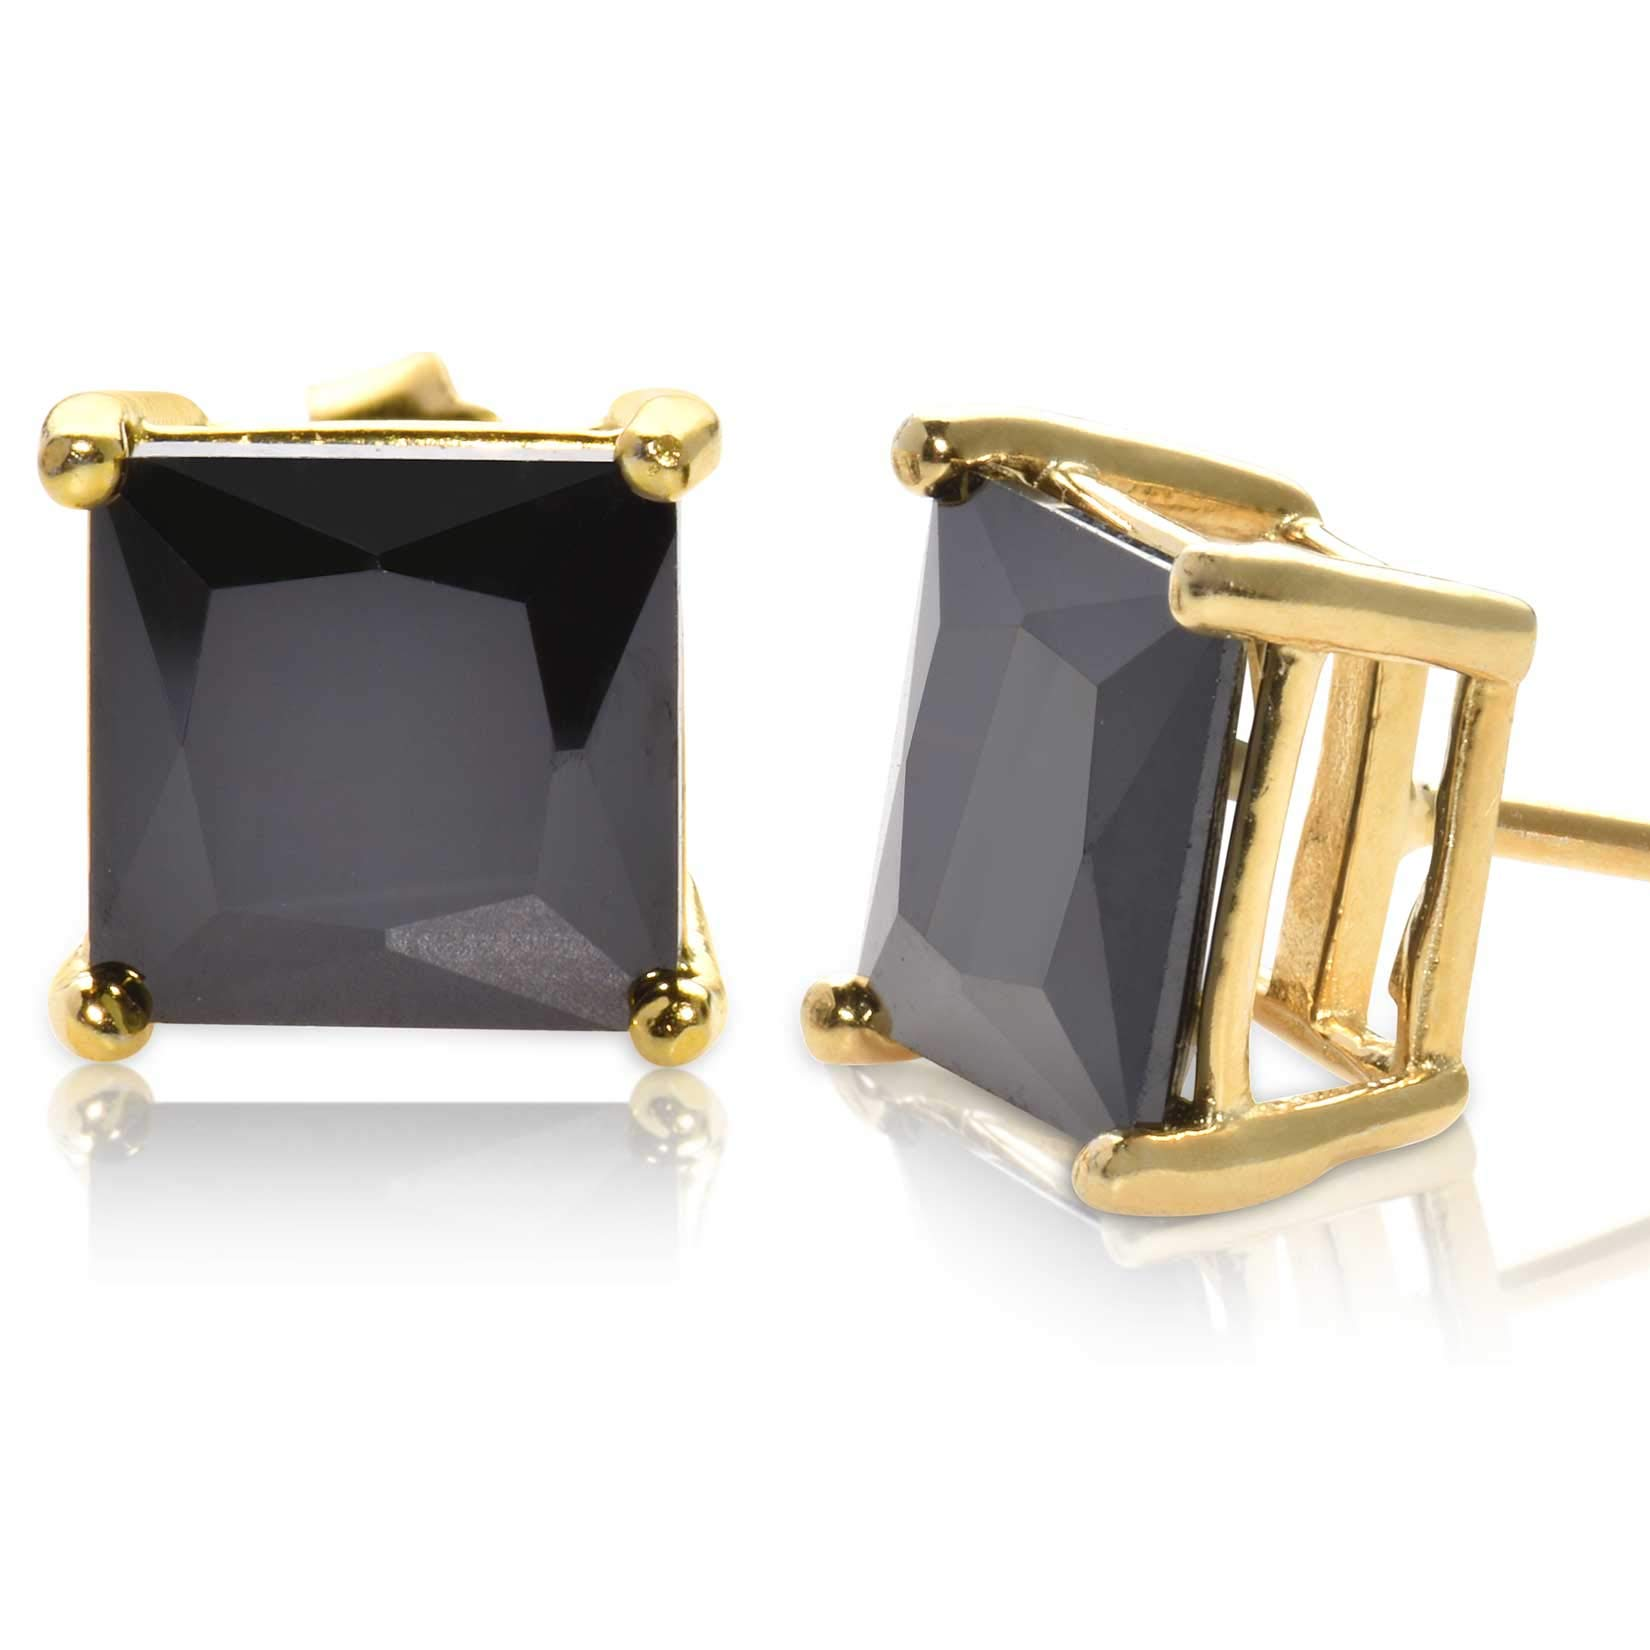 Radiant Princess Square Cut Black CZ Unisex Stud Earrings Gold Plated 925 Sterling Silver 7x7mm